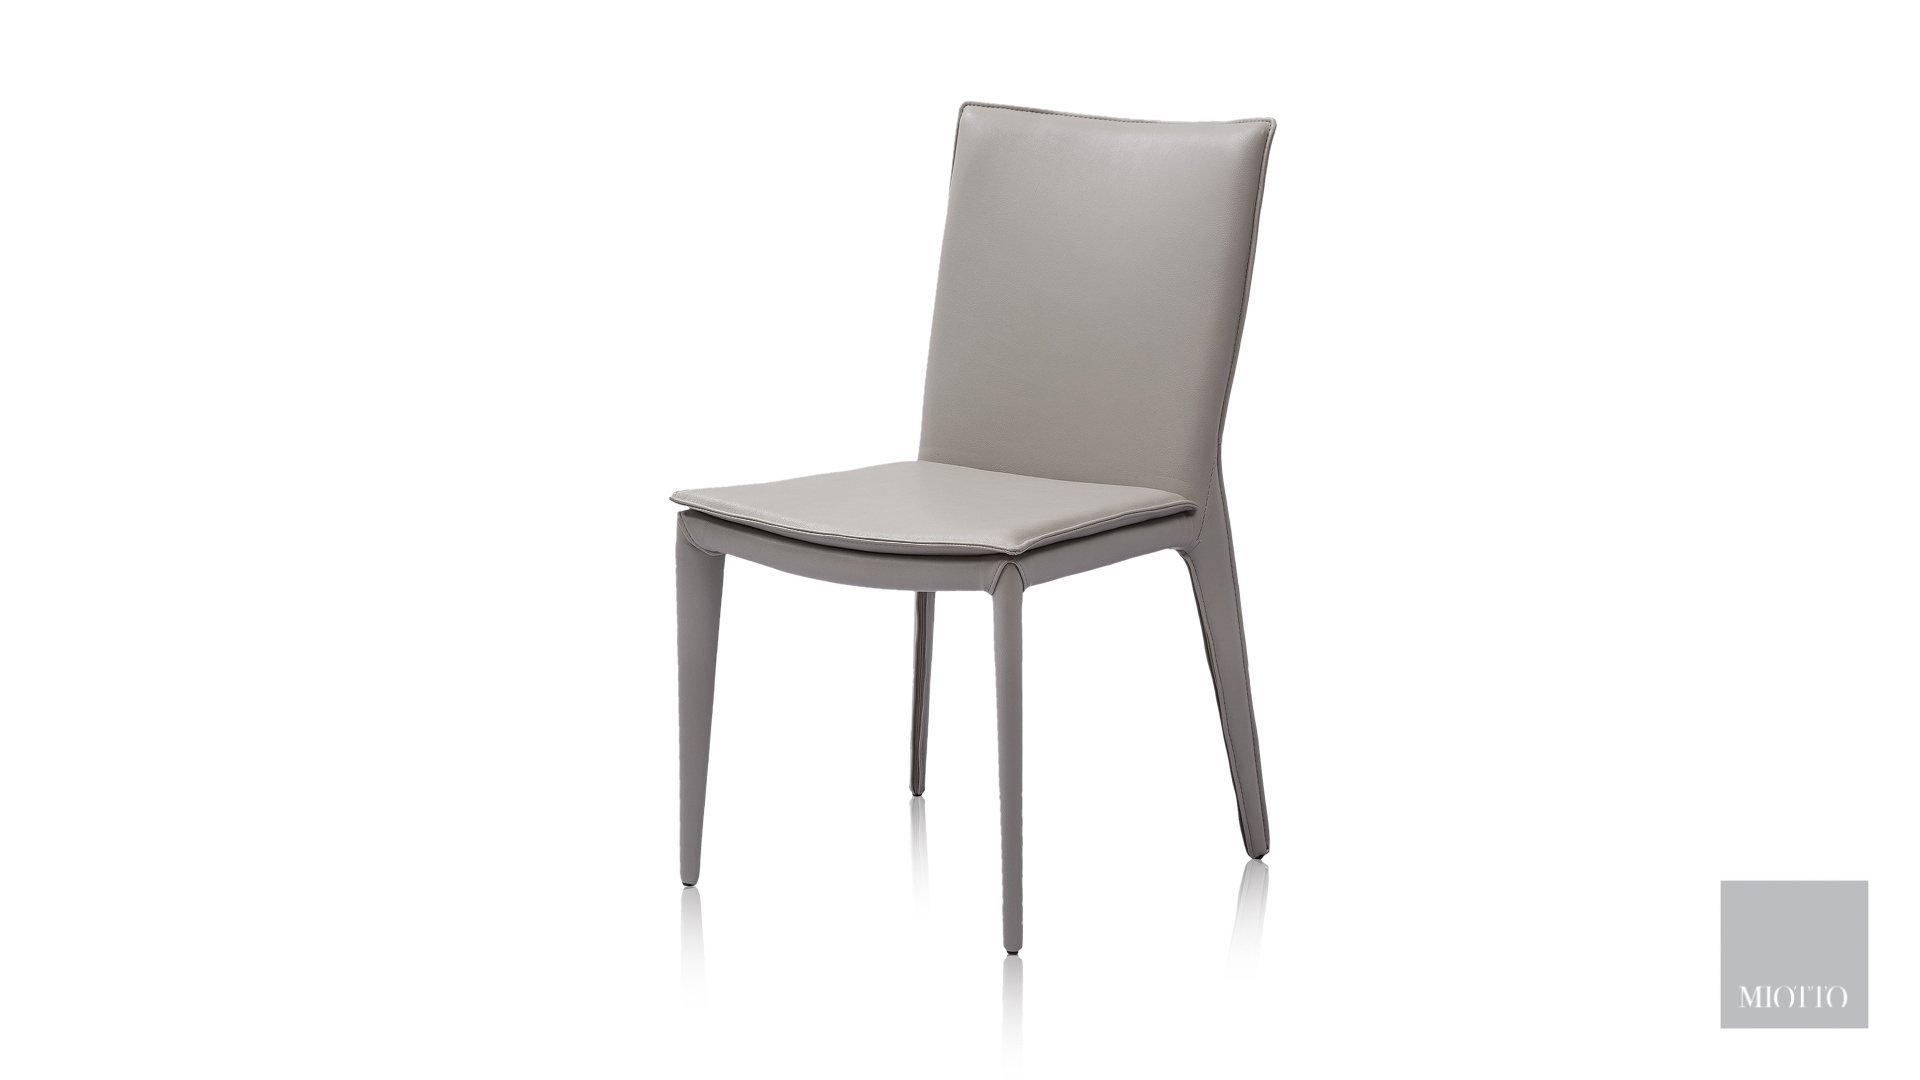 miotto_torano DC light grey T miotto dining chair furniture_BQ